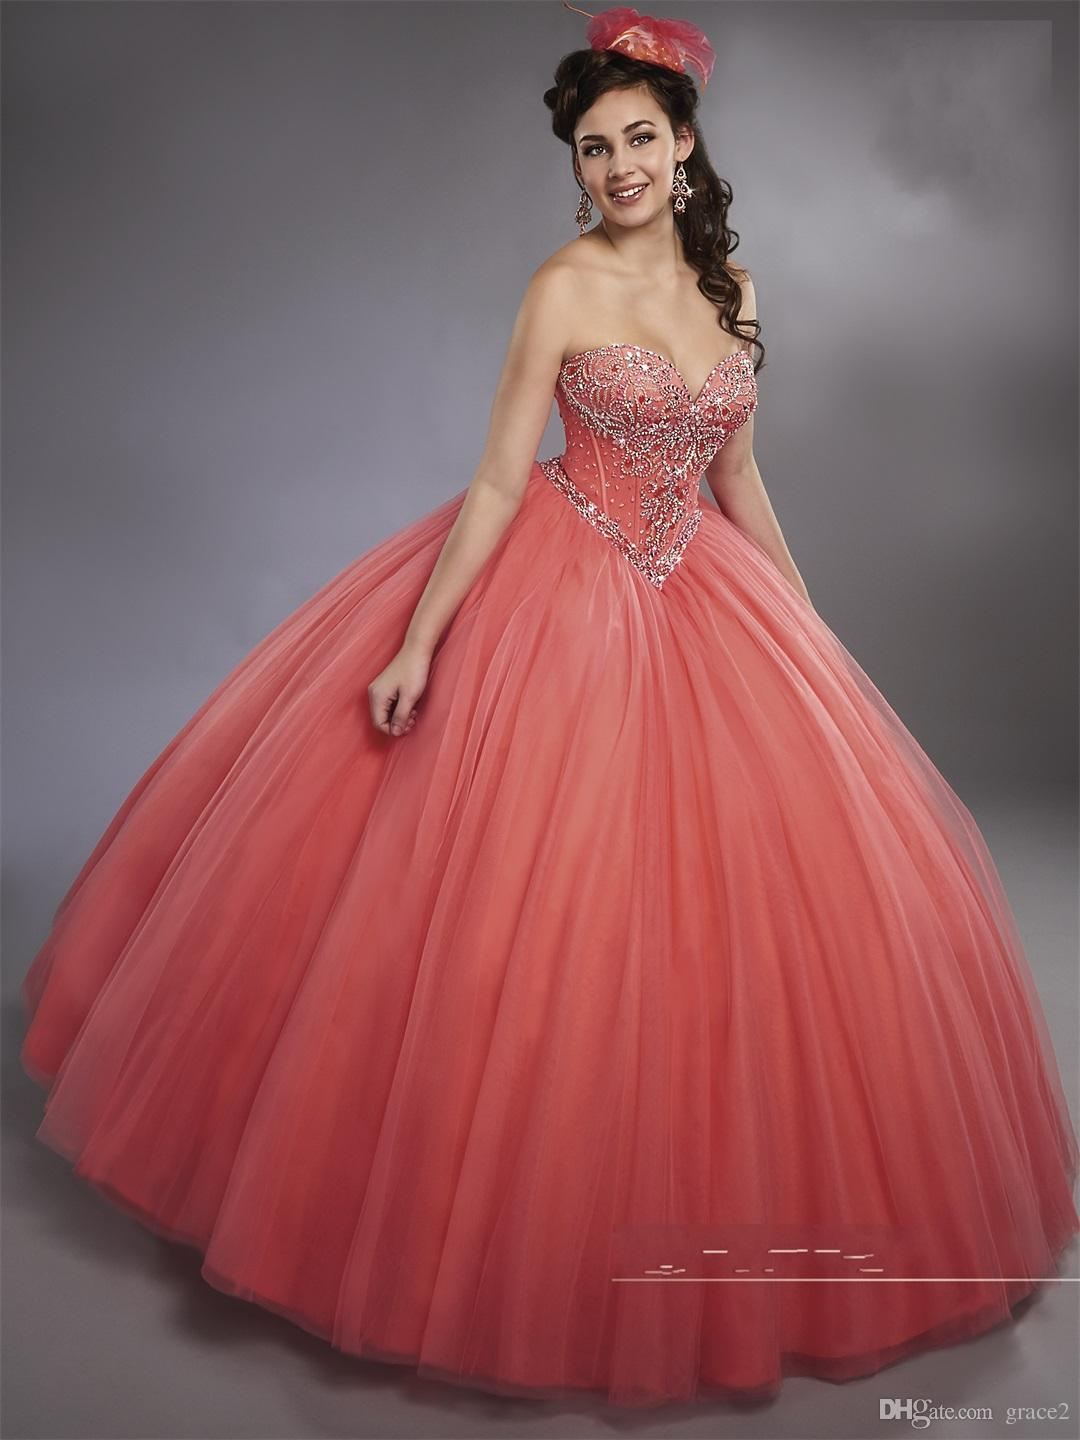 8f4106e1089 Sleeveless Watermelon Ball Gown Quinceanera Dresses With Detachable Straps  Basque Waistline Sweet 15 16 Princess Dresses Custom Made Ball Gown  Quinceanera ...